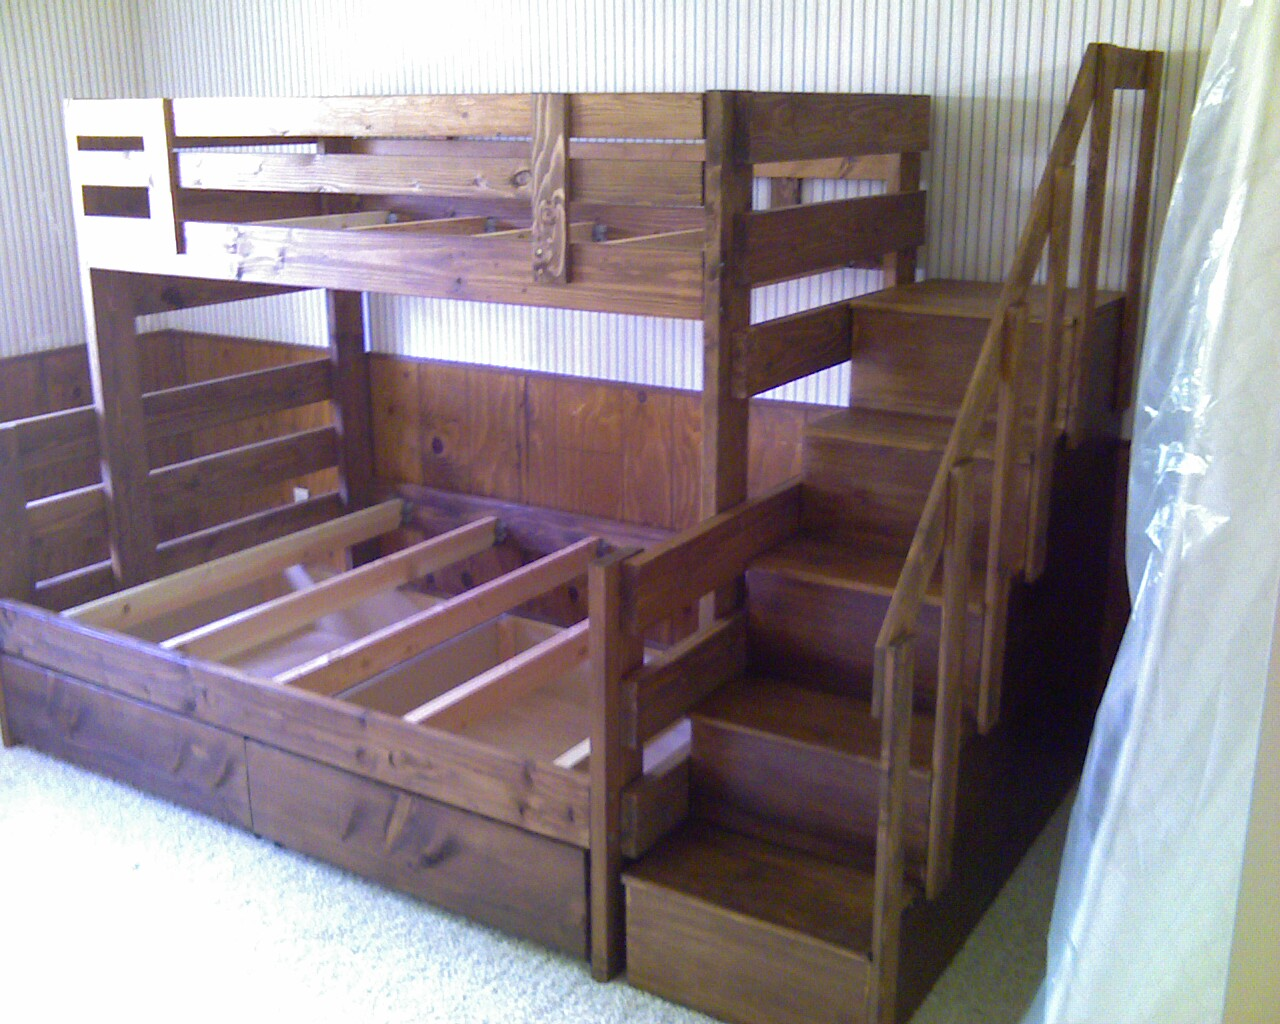 Shed Plan: Complete Bunk bed teds woodworking plans login